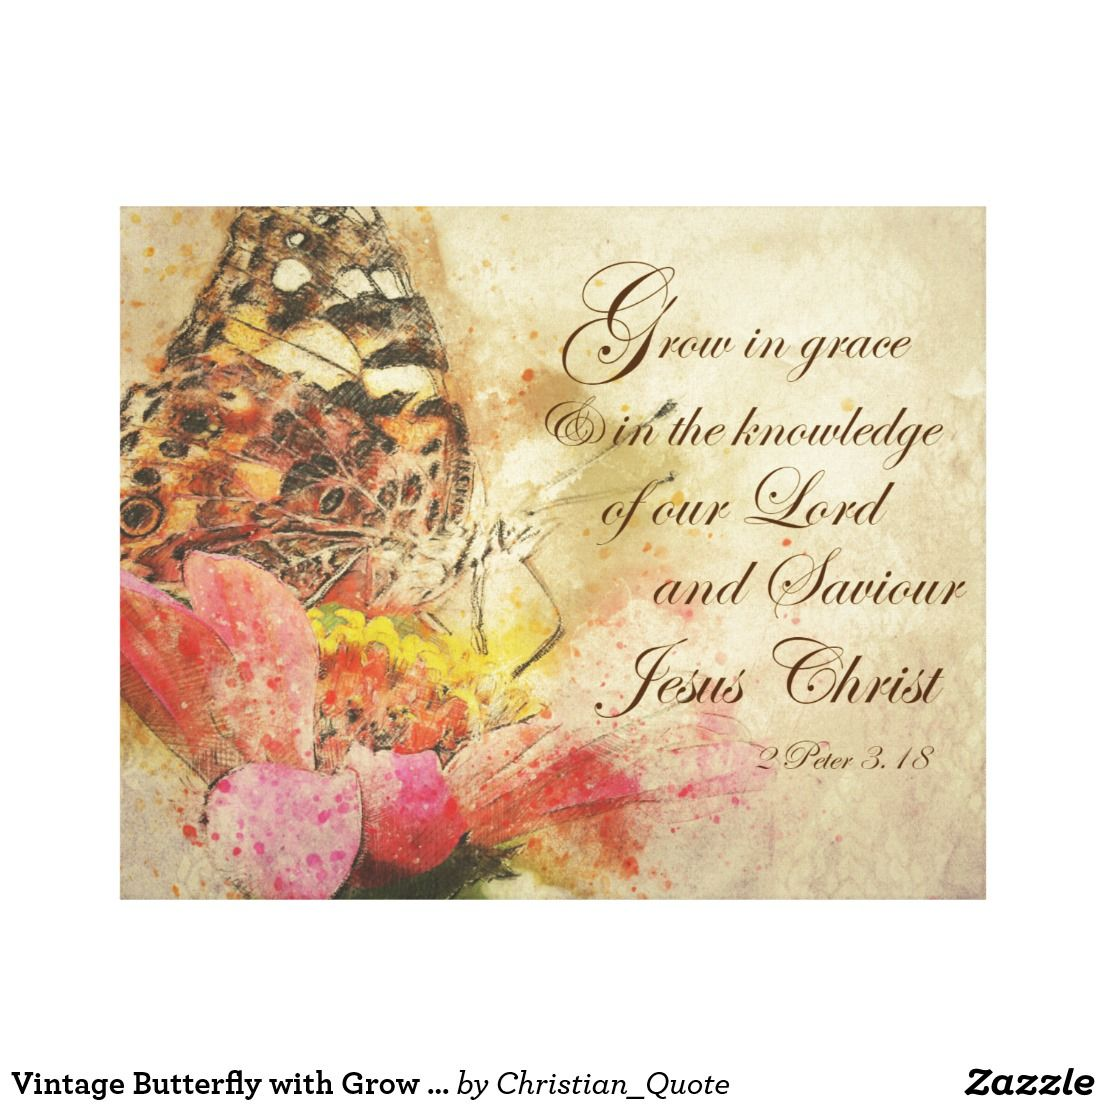 Vintage Butterfly with Grow in Grace Bible Verse Canvas Print ...